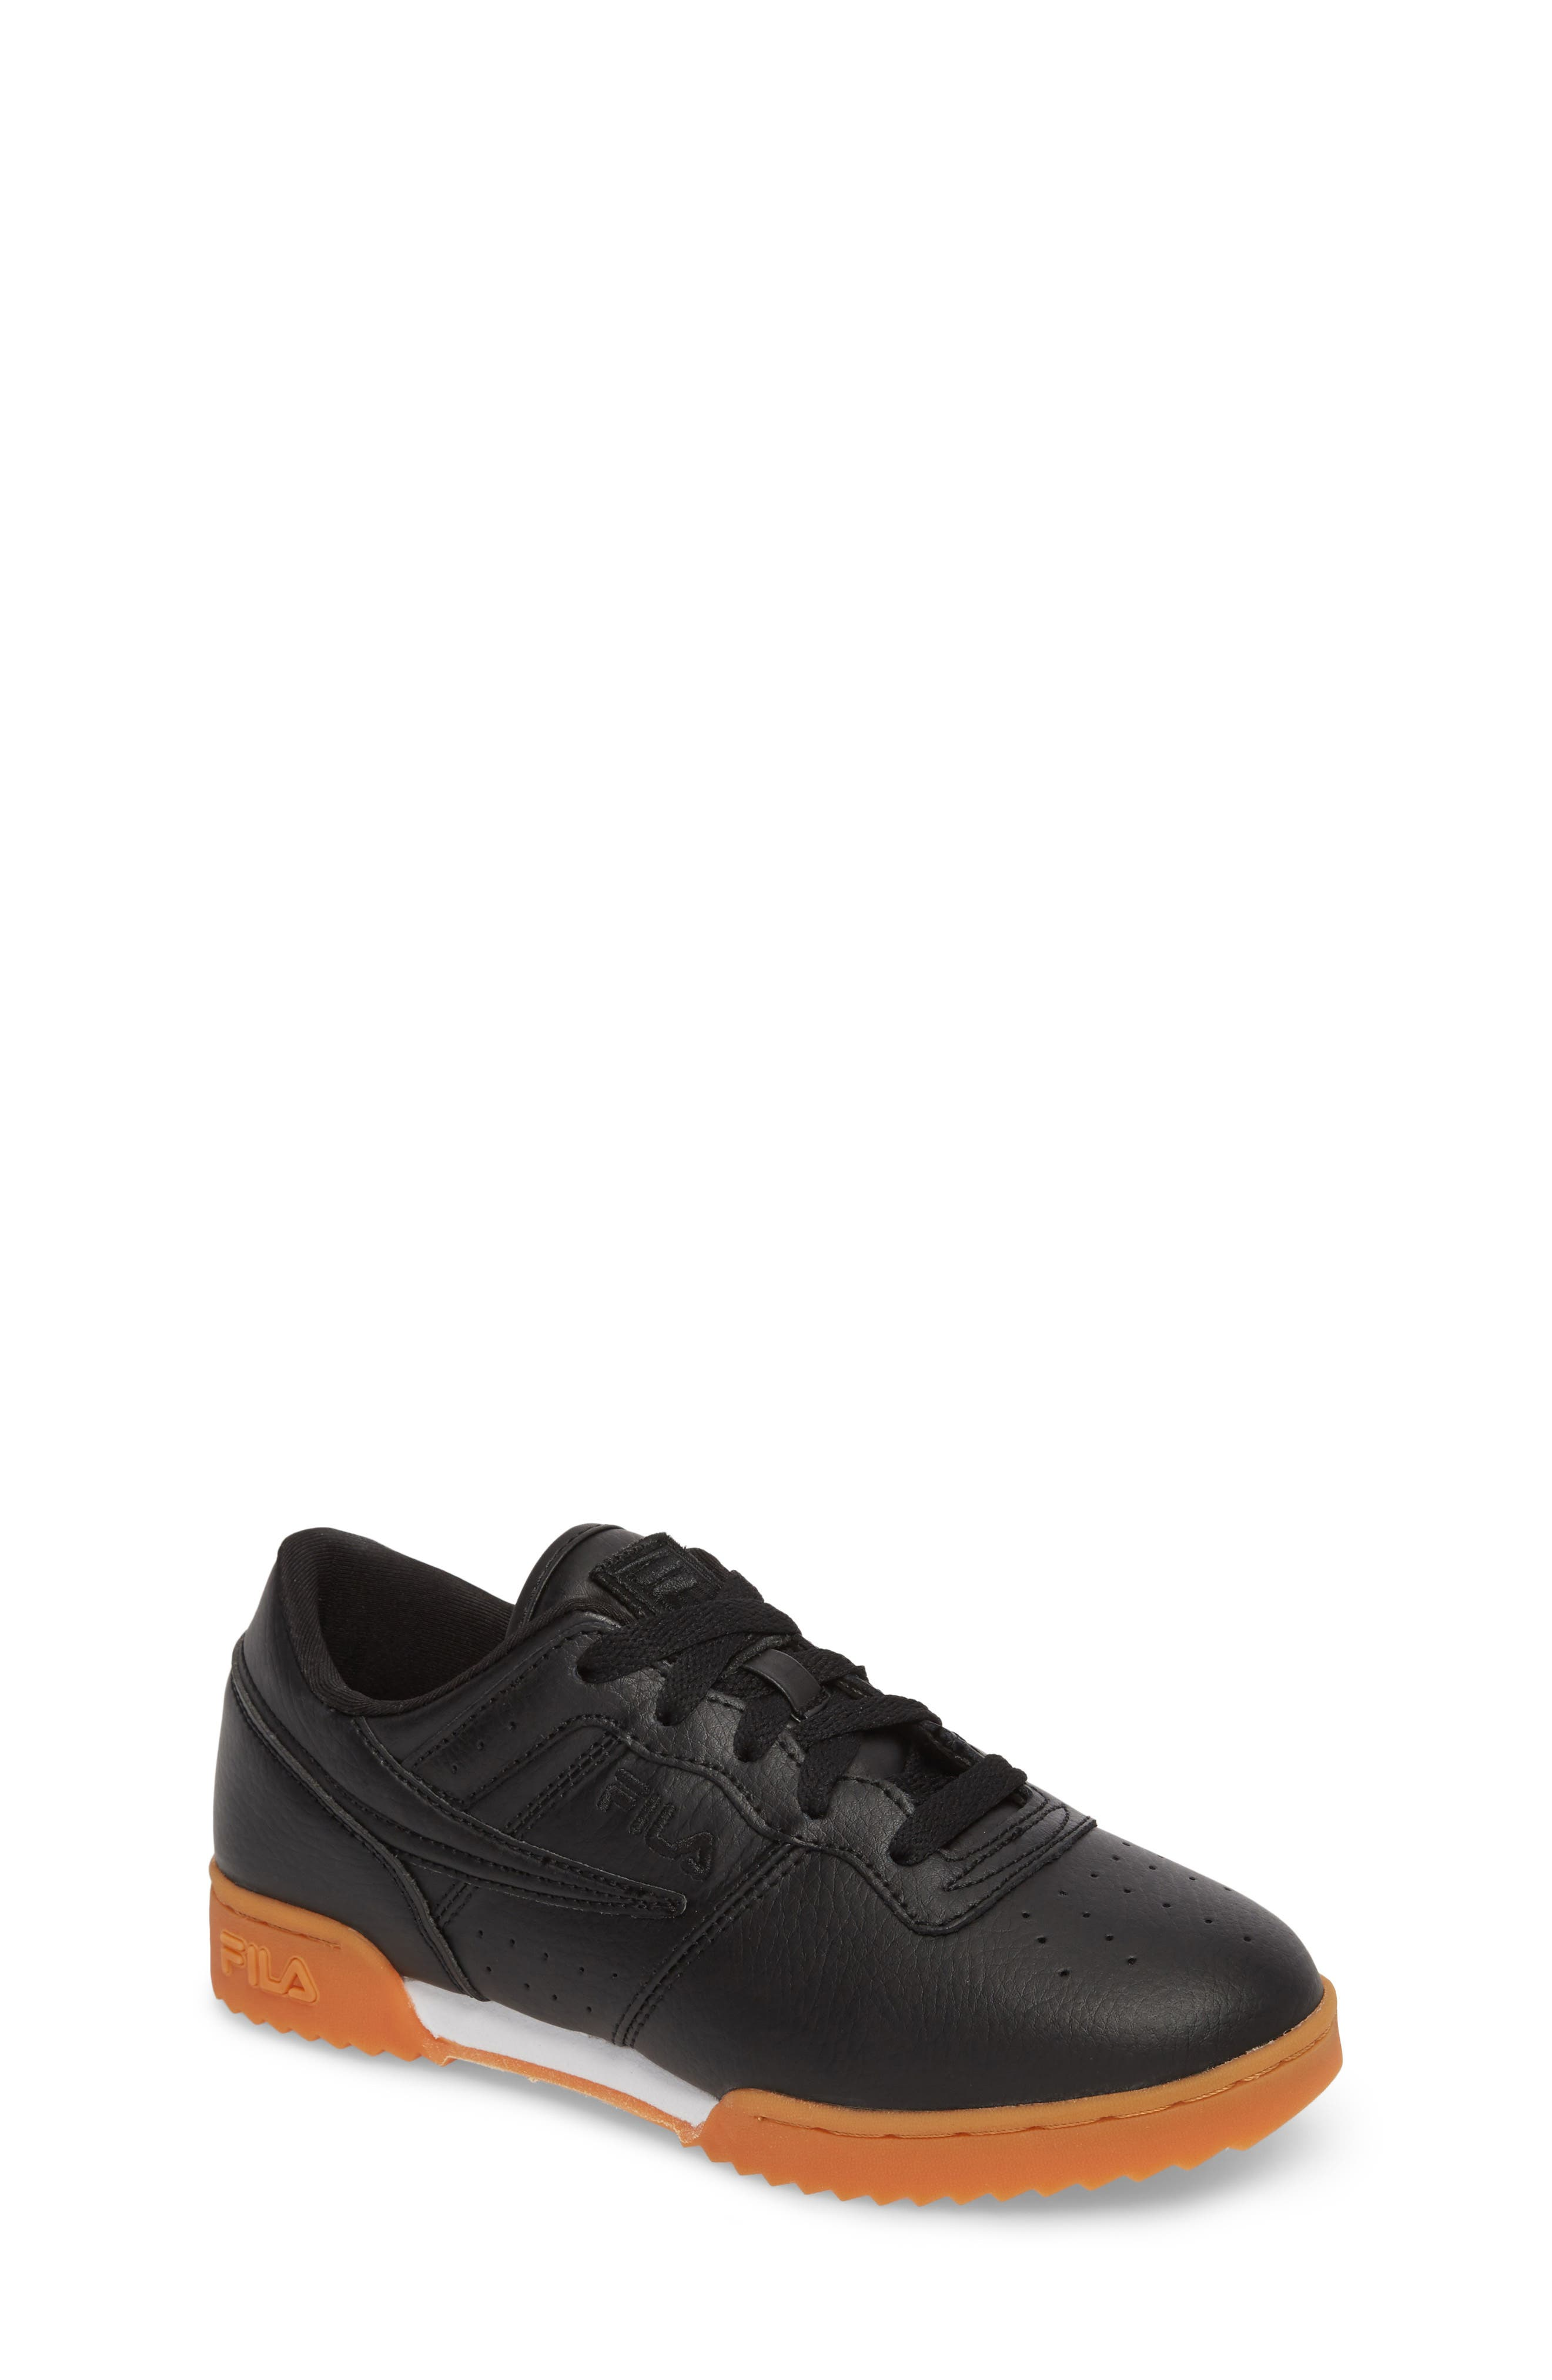 Original Fitness Sneaker,                         Main,                         color, Black/ Gum